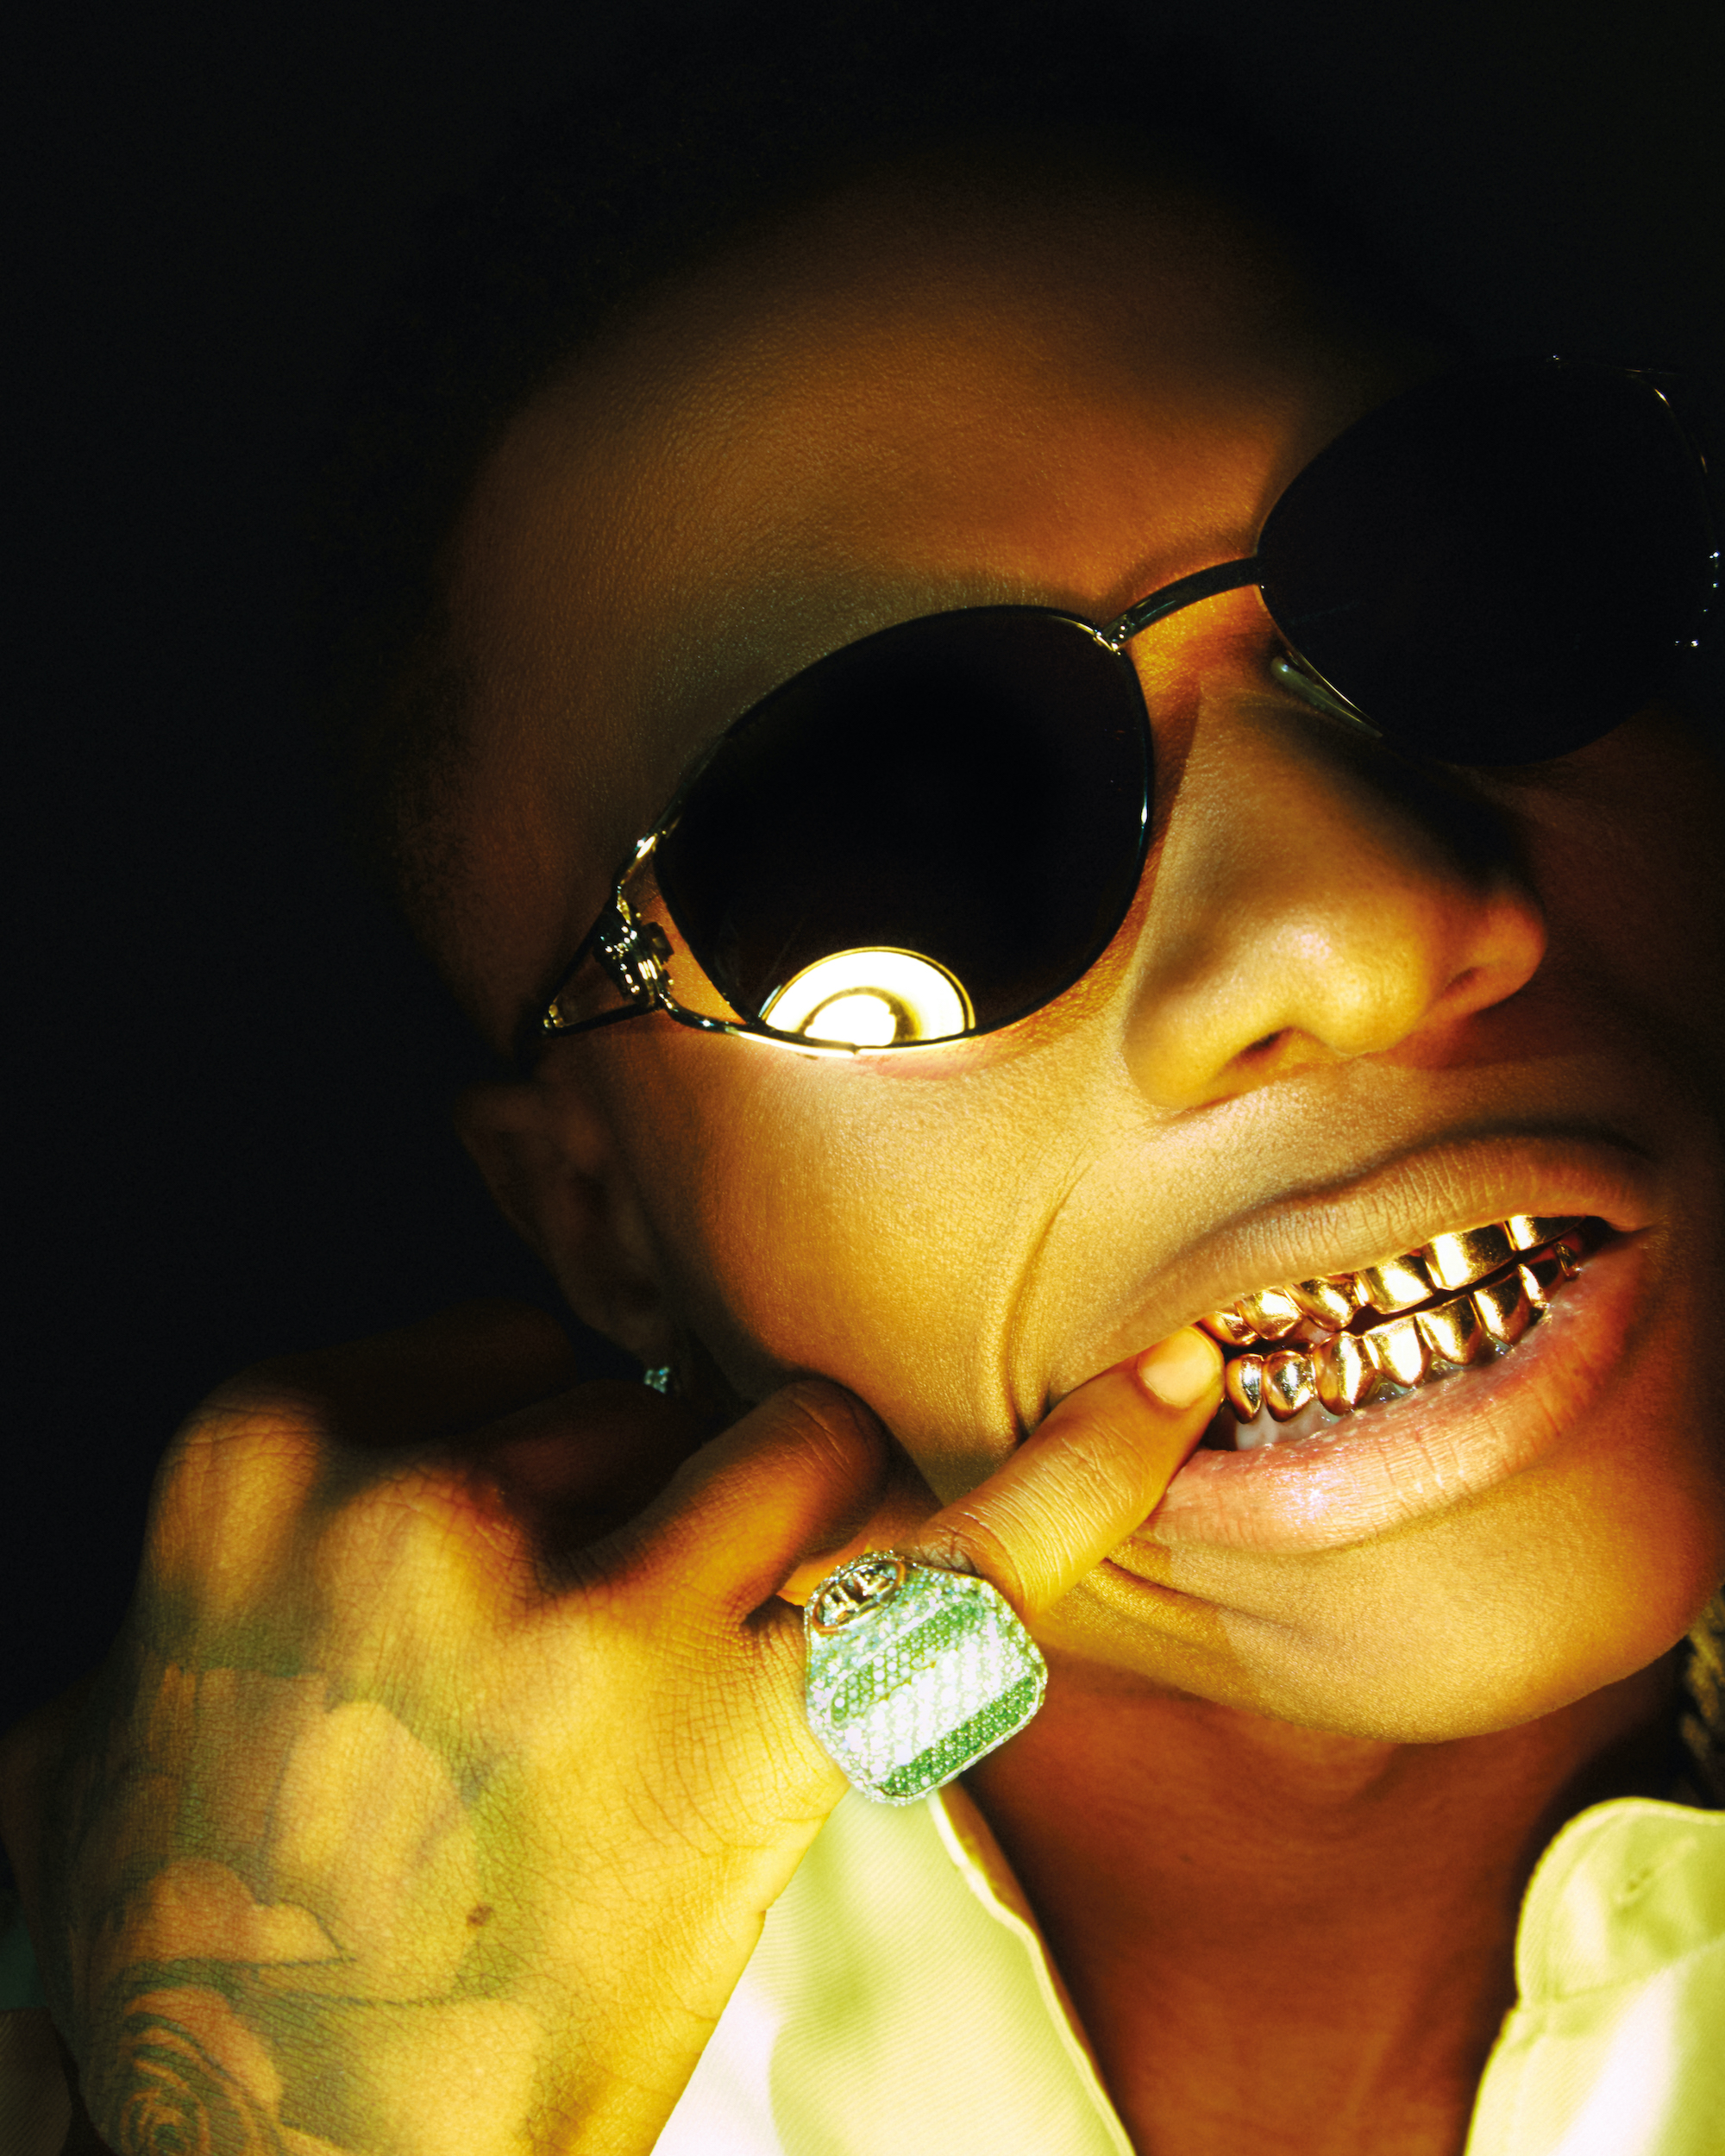 WizKid wearing shades and gold ring